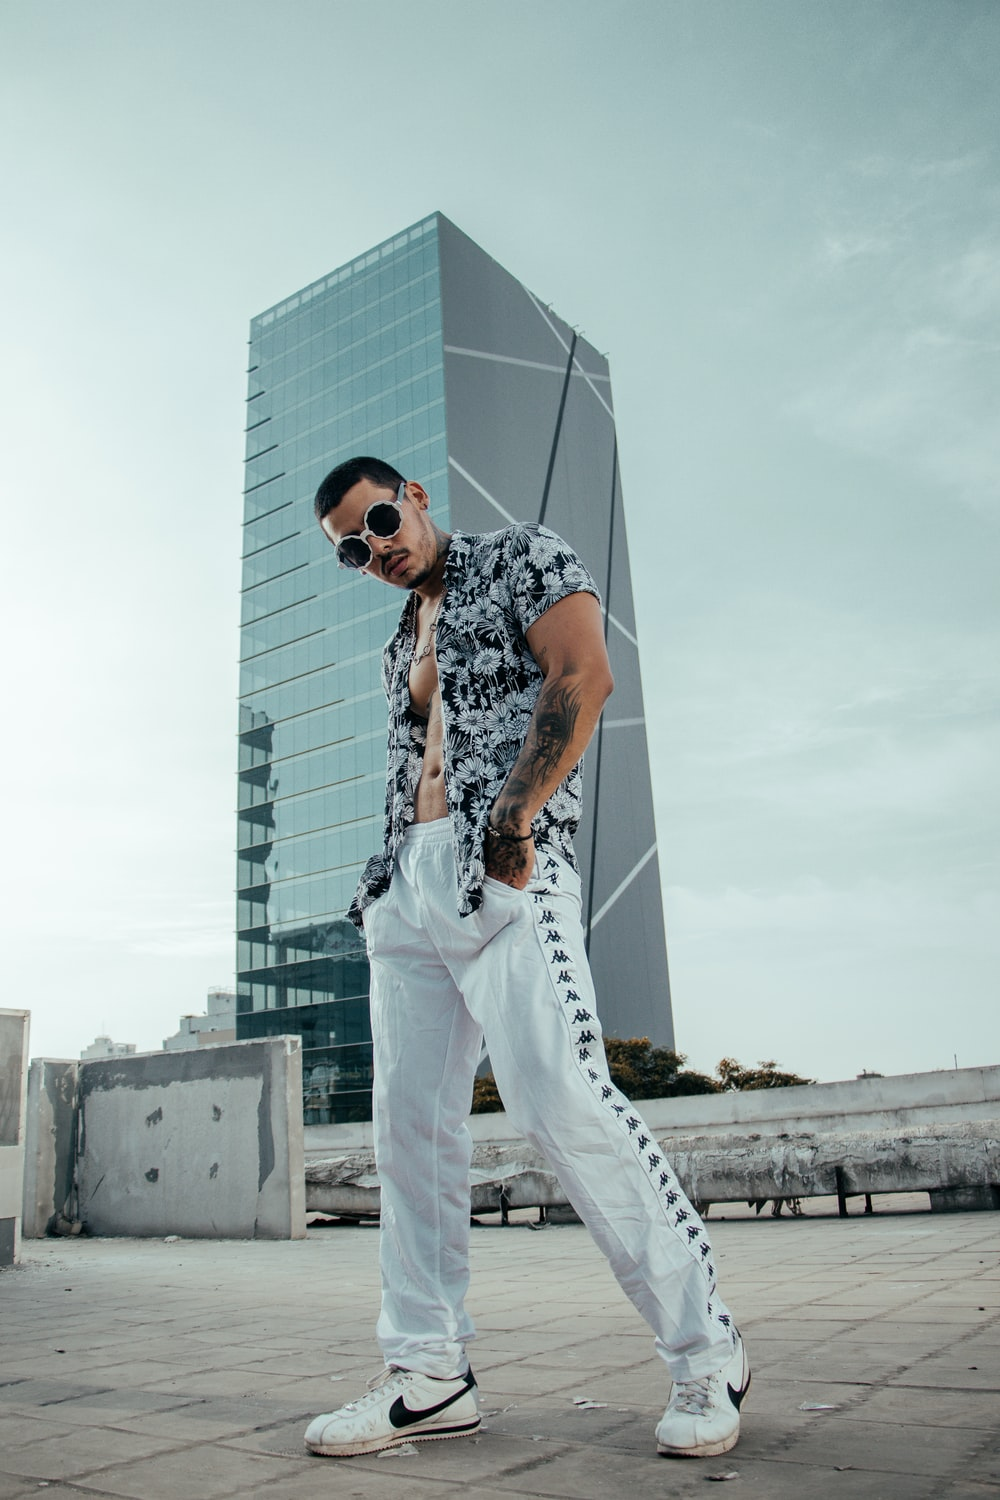 man in black and white floral button-up T-shirt wearing sunglasses near building during daytime